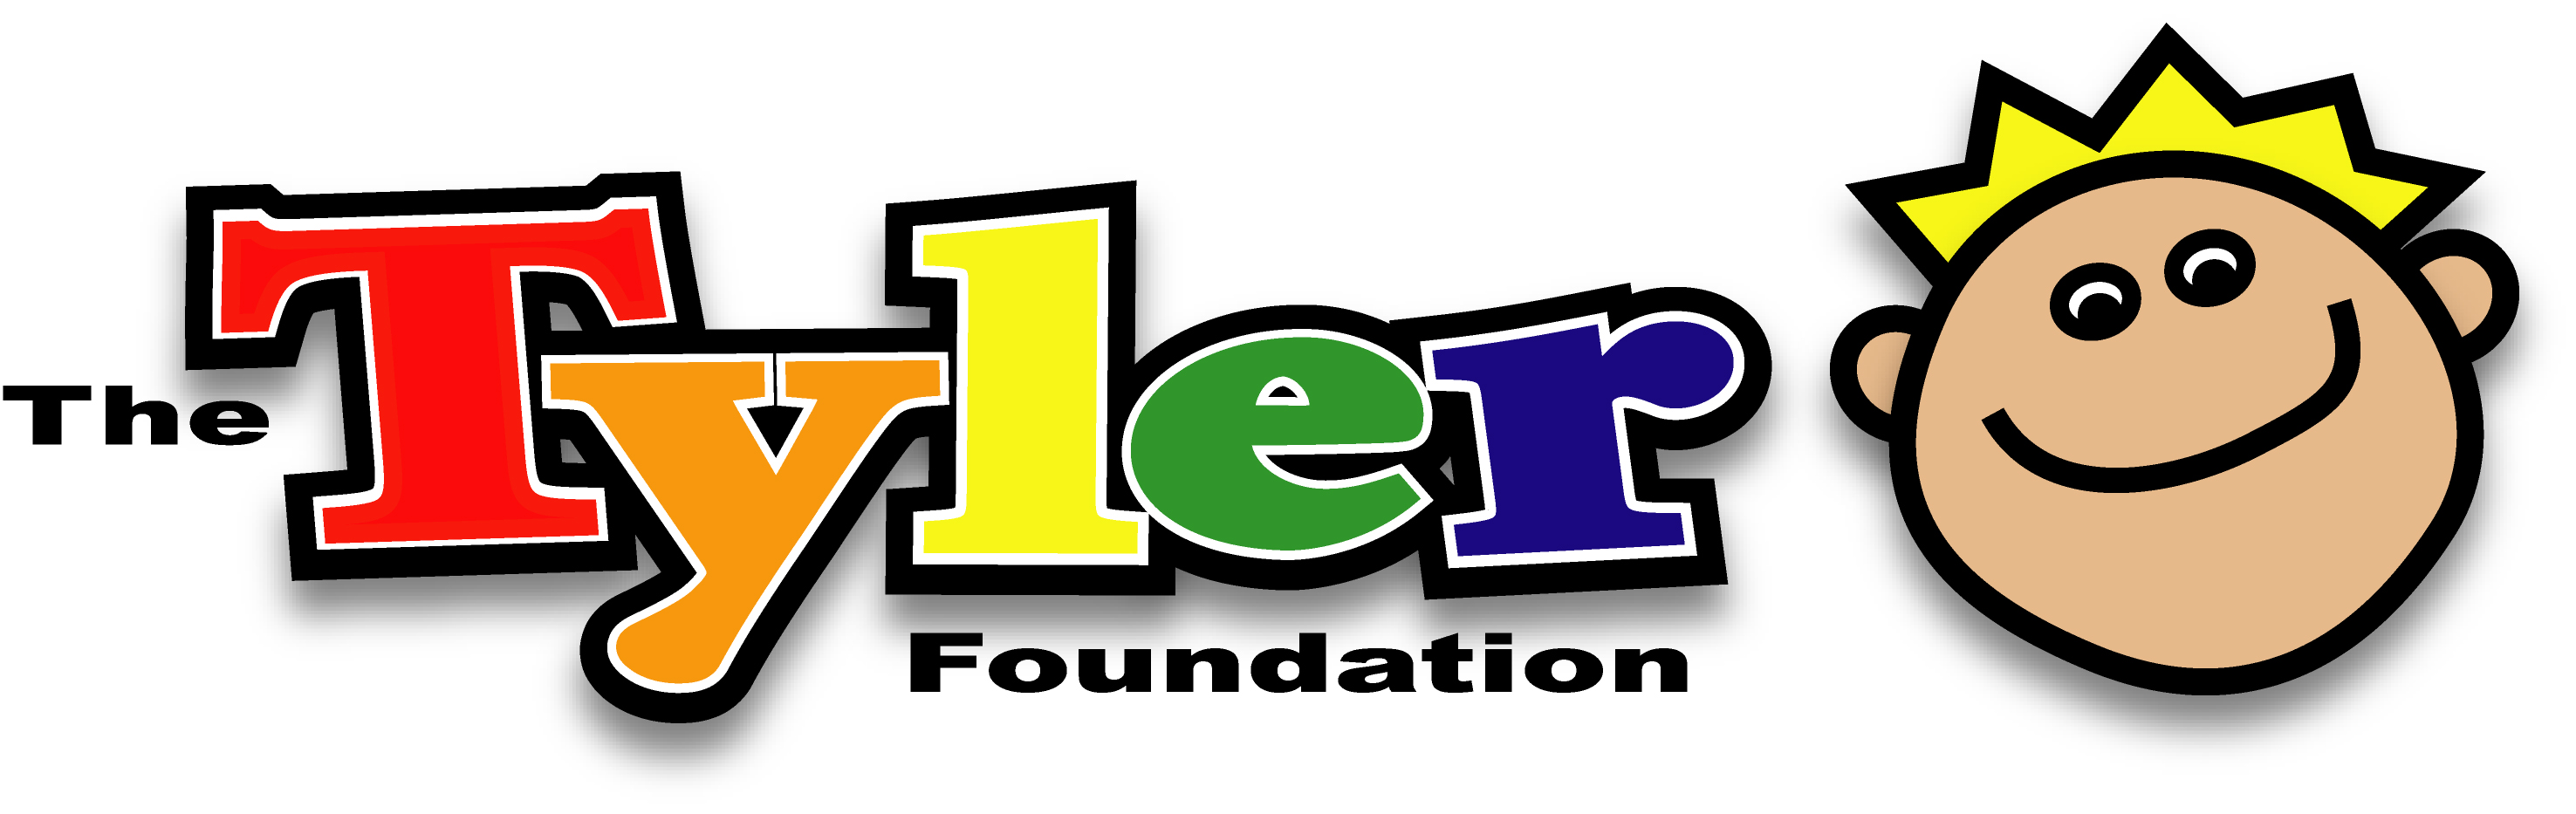 TYLER FOUNDATION INCORPORATED